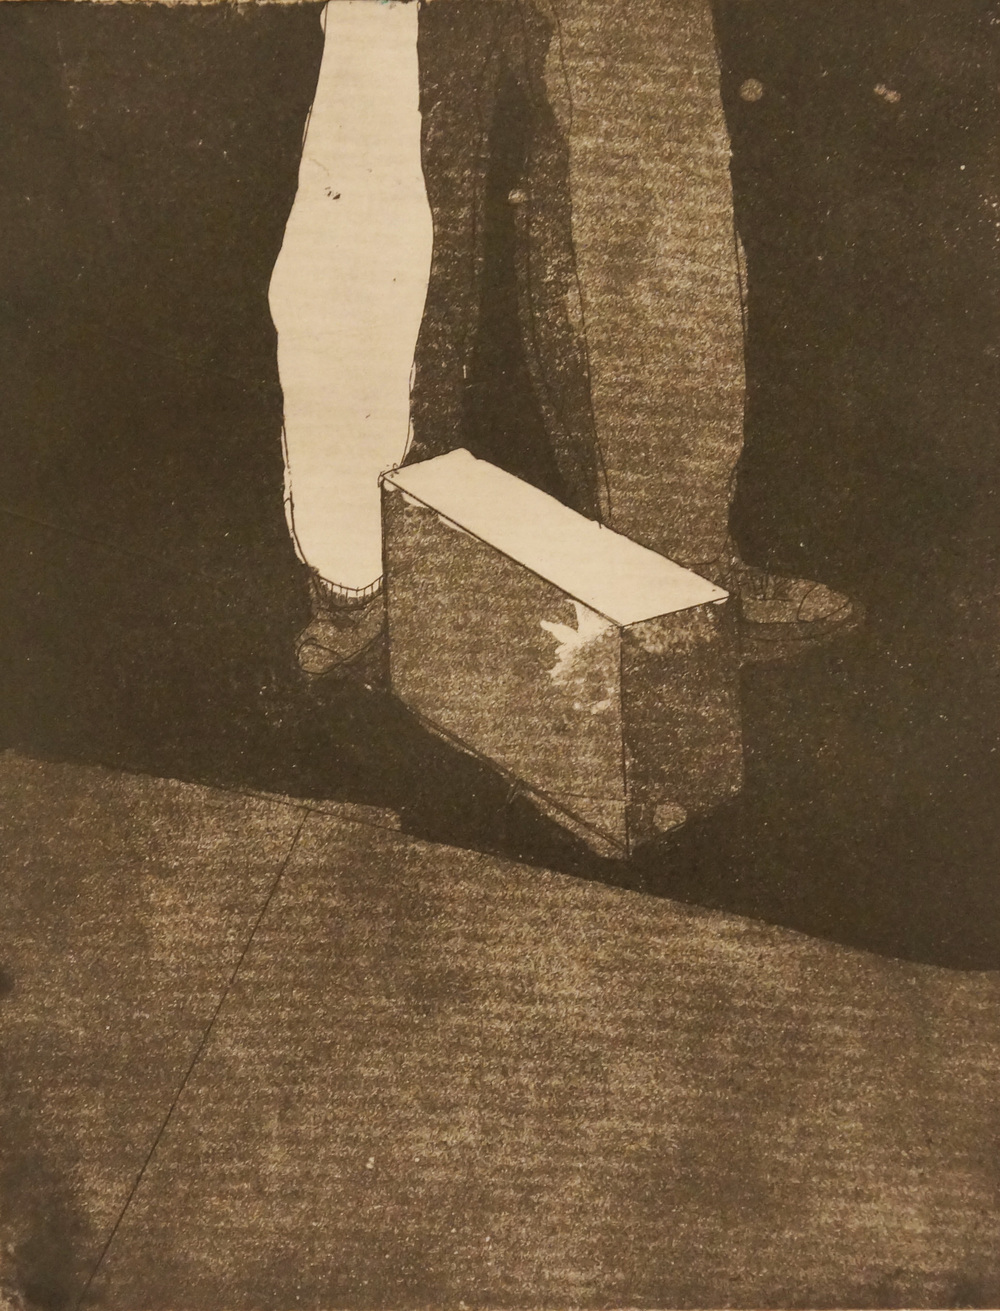 6 x 4.5 in  etching on paper